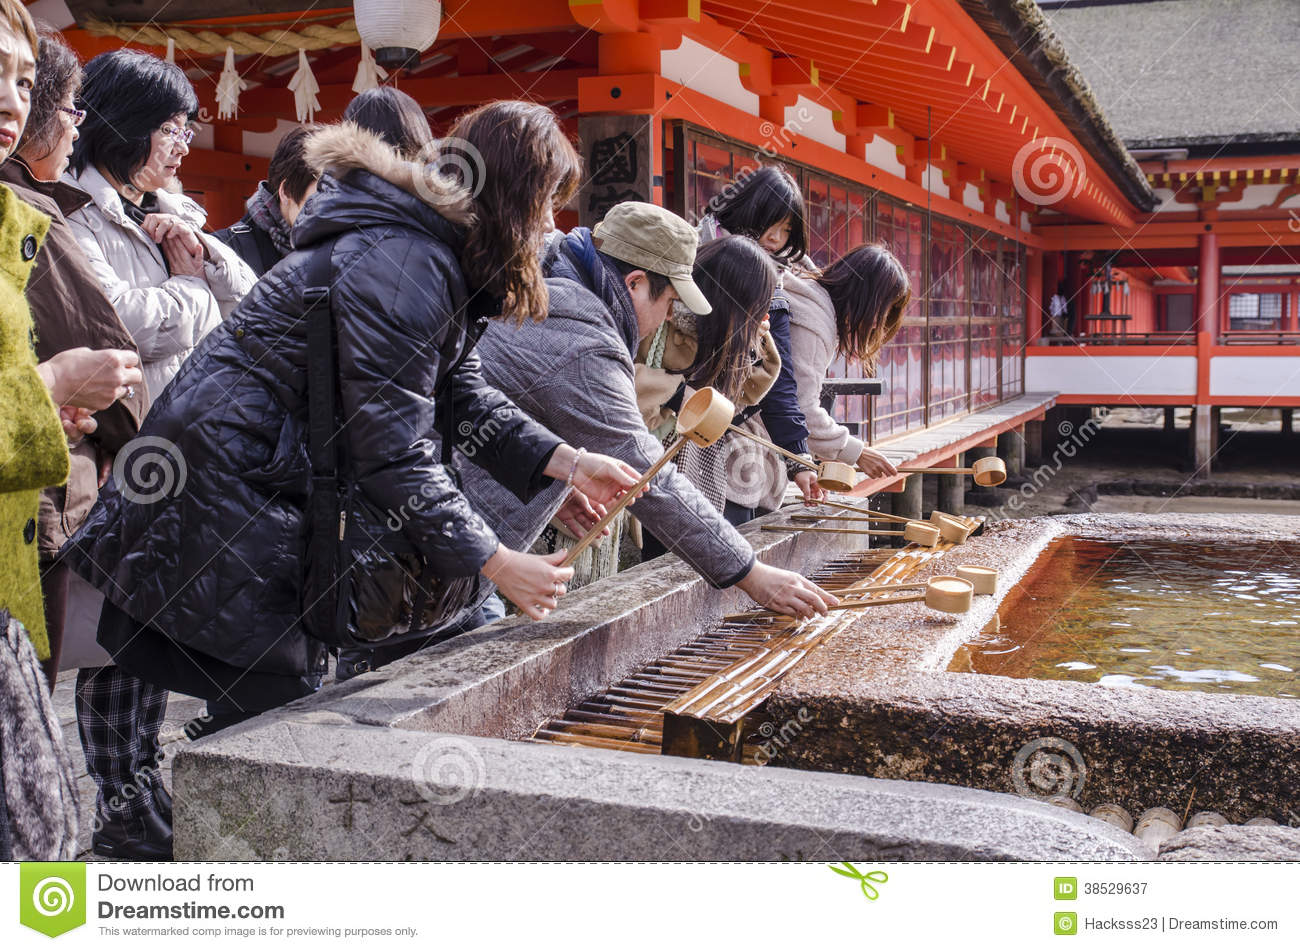 a description of shinto as the faith of the japanese people Jodo & shinto along with zen buddhism, people in japan also hold to practices with the ancient japanese faith of shinto zen buddhism: description.